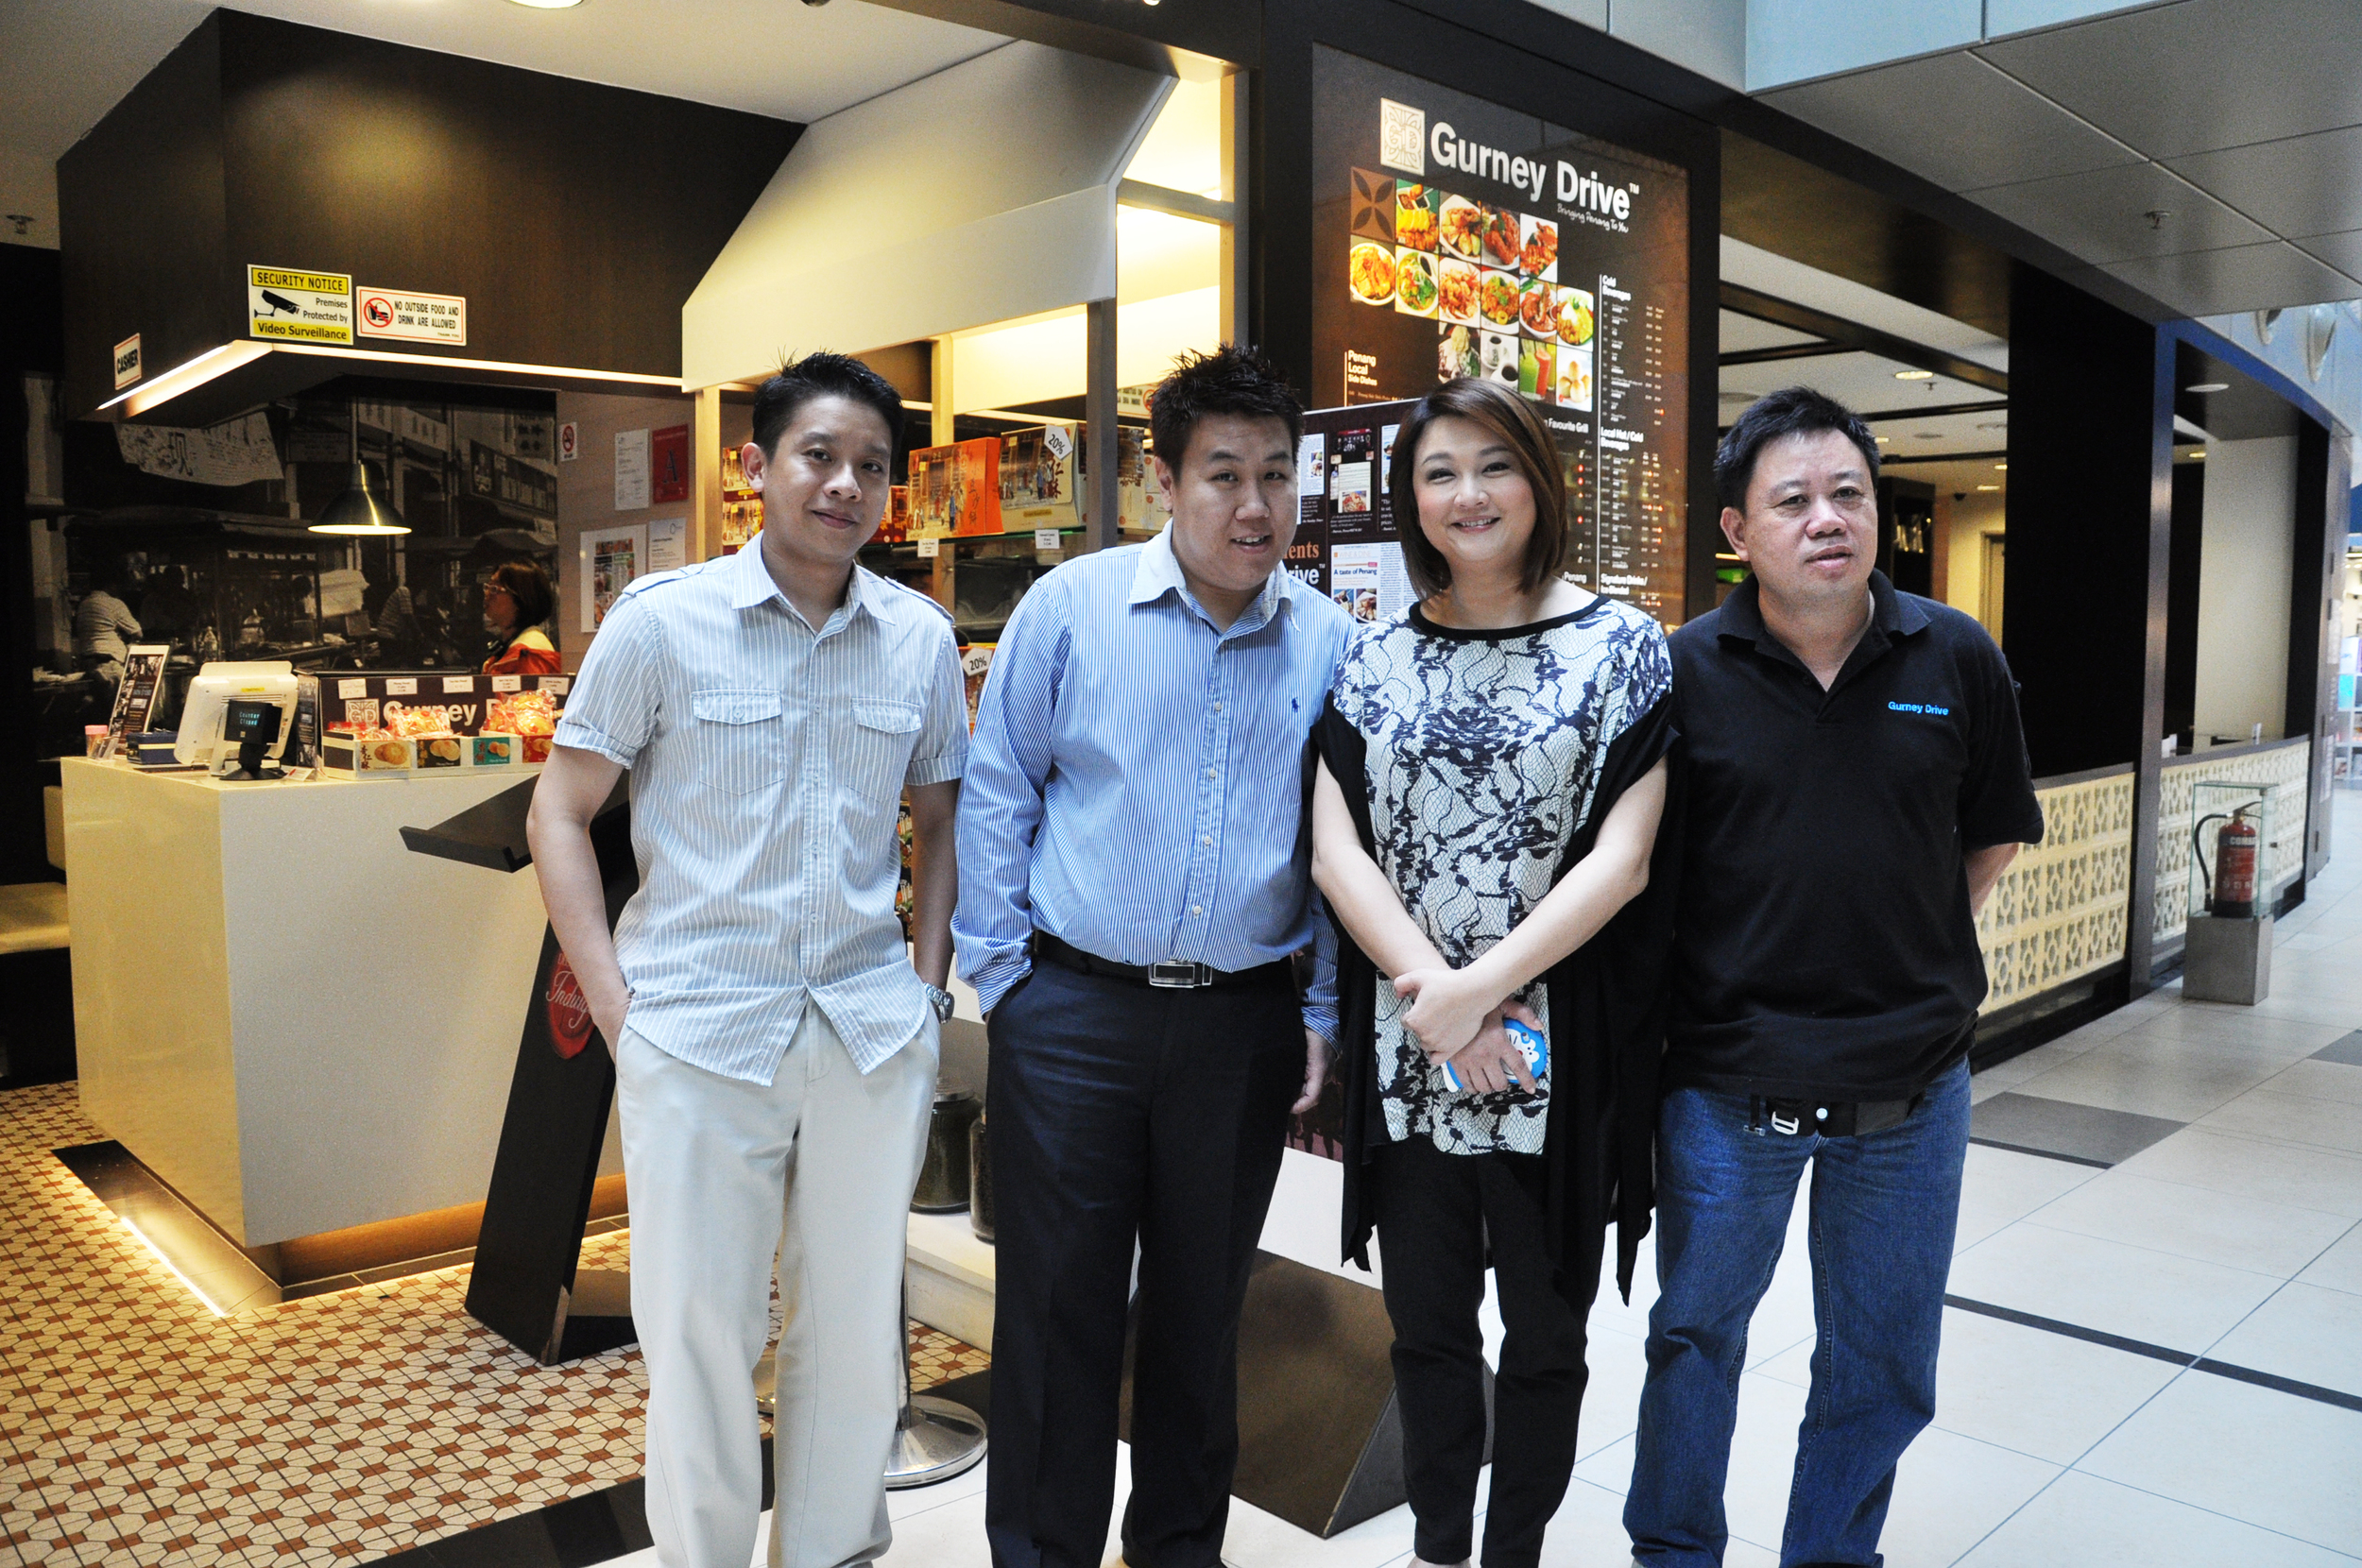 Mediacorp Artiste Chen Li Ping with our founders and Head Chef Wong.